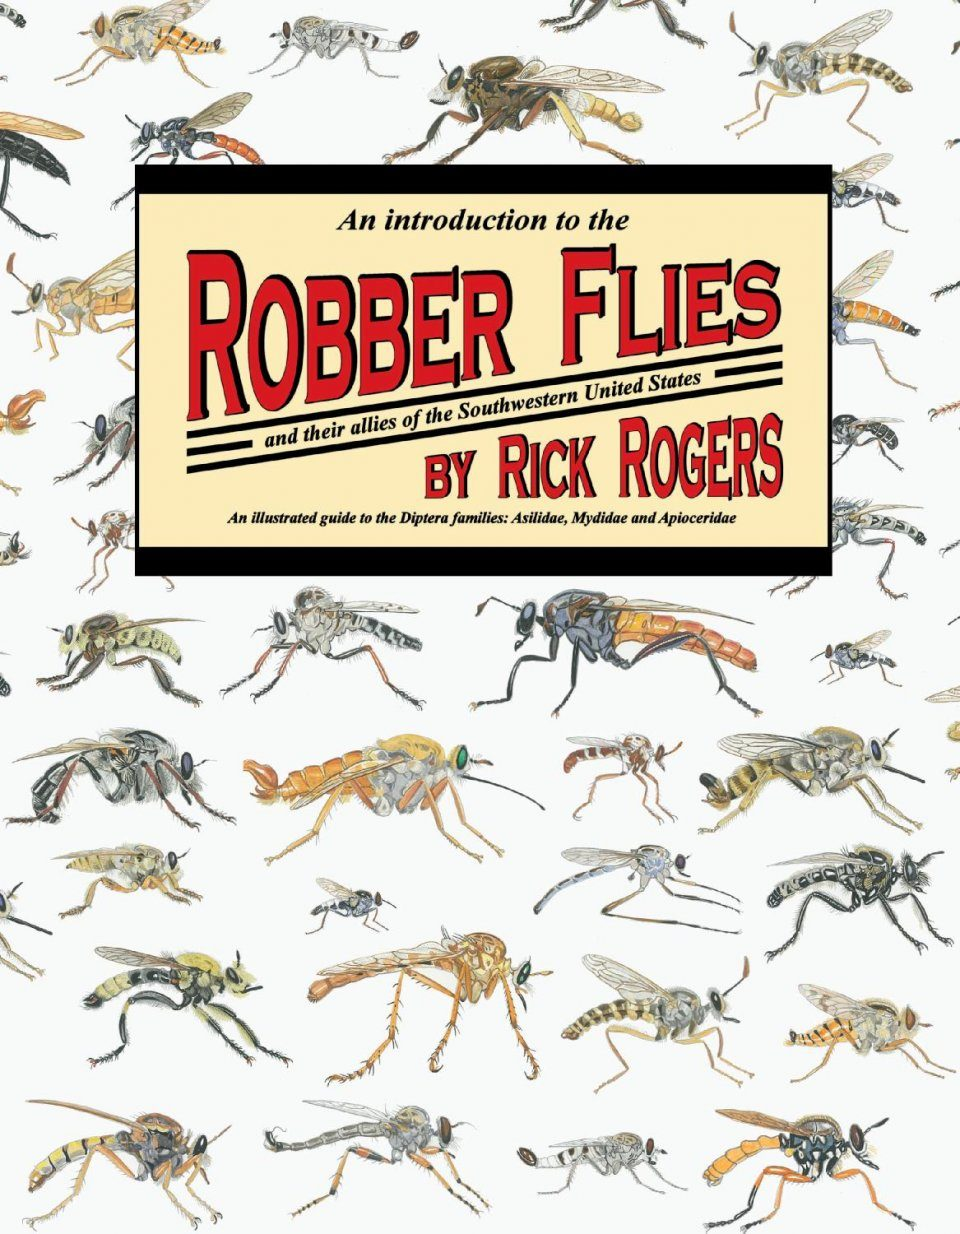 An Introduction to Robber Flies and Their Allies of the Southwestern United States